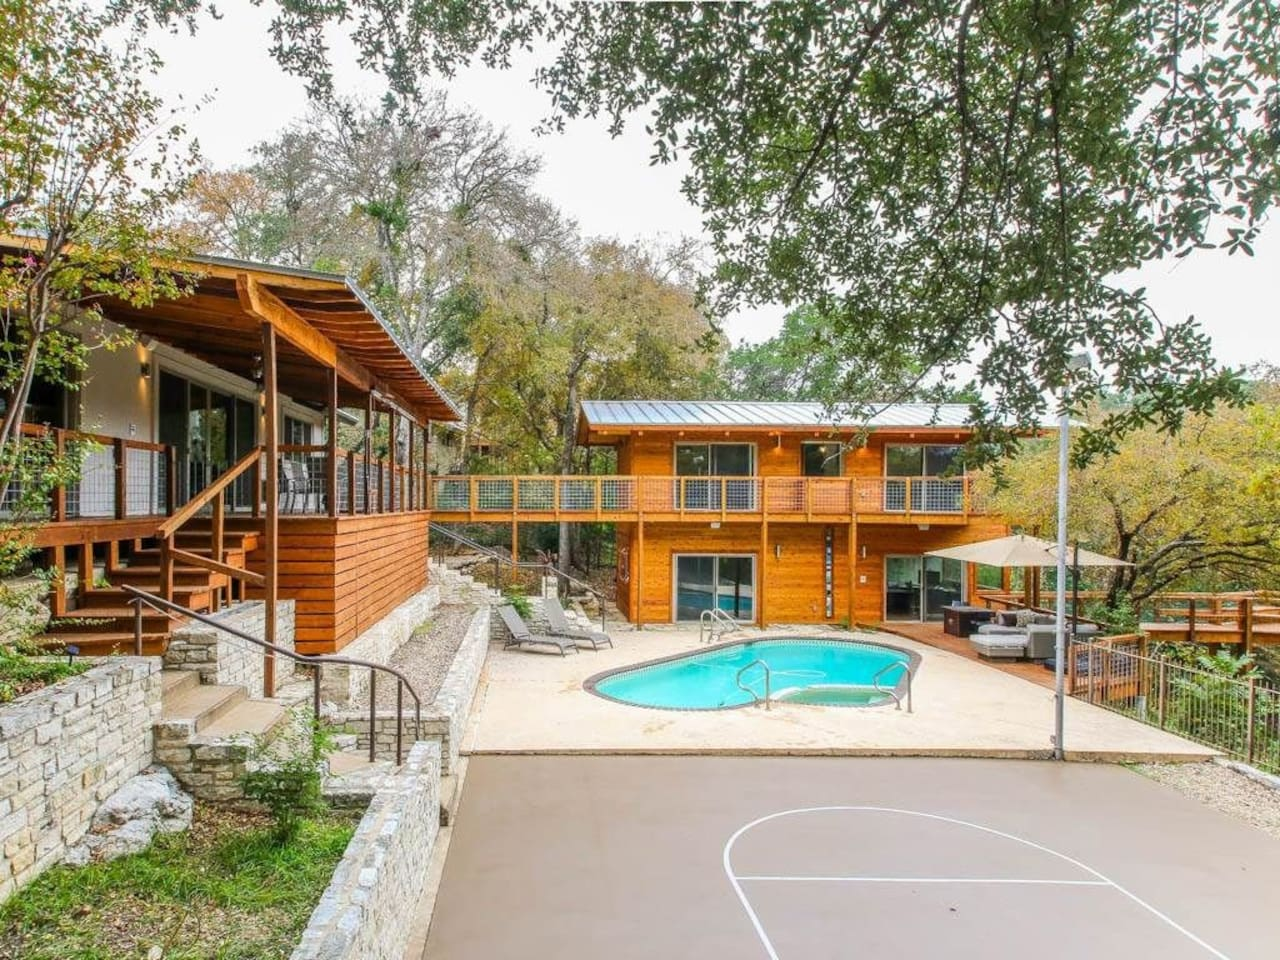 Lower Deck, pool with jacuzzi, b-ball court and Guest House